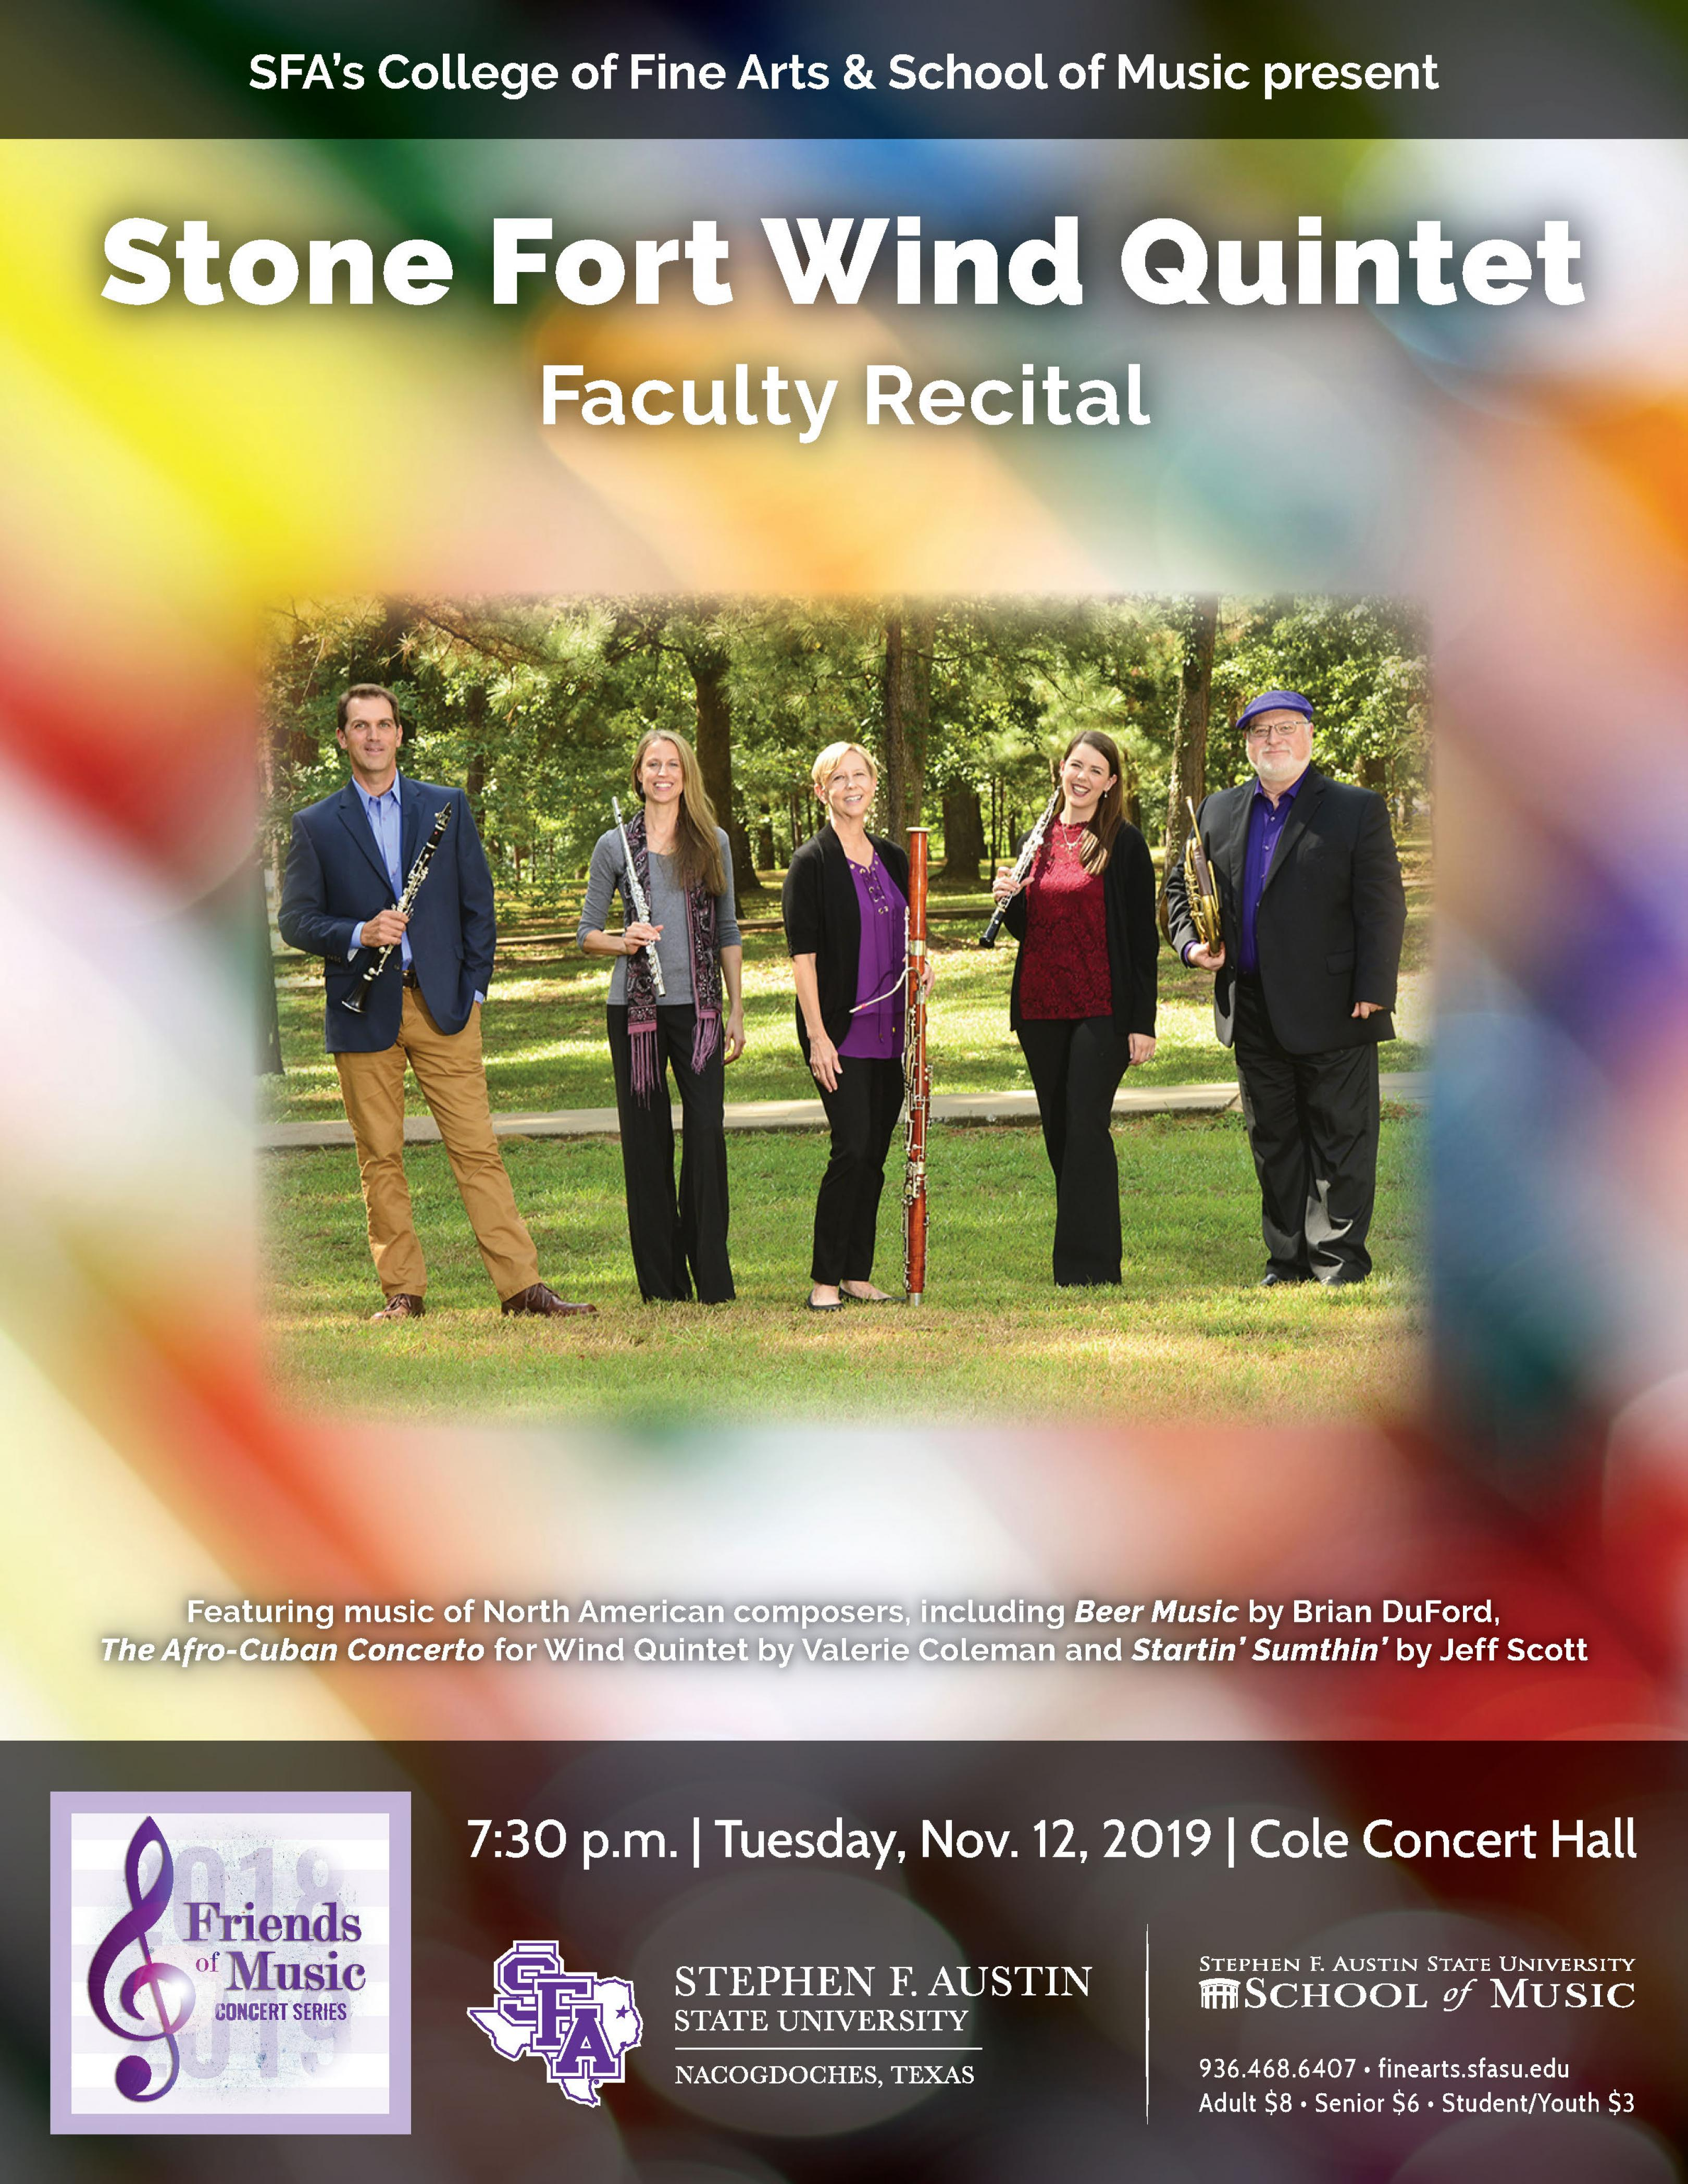 publicity image for Stone Fort Wind Quintet